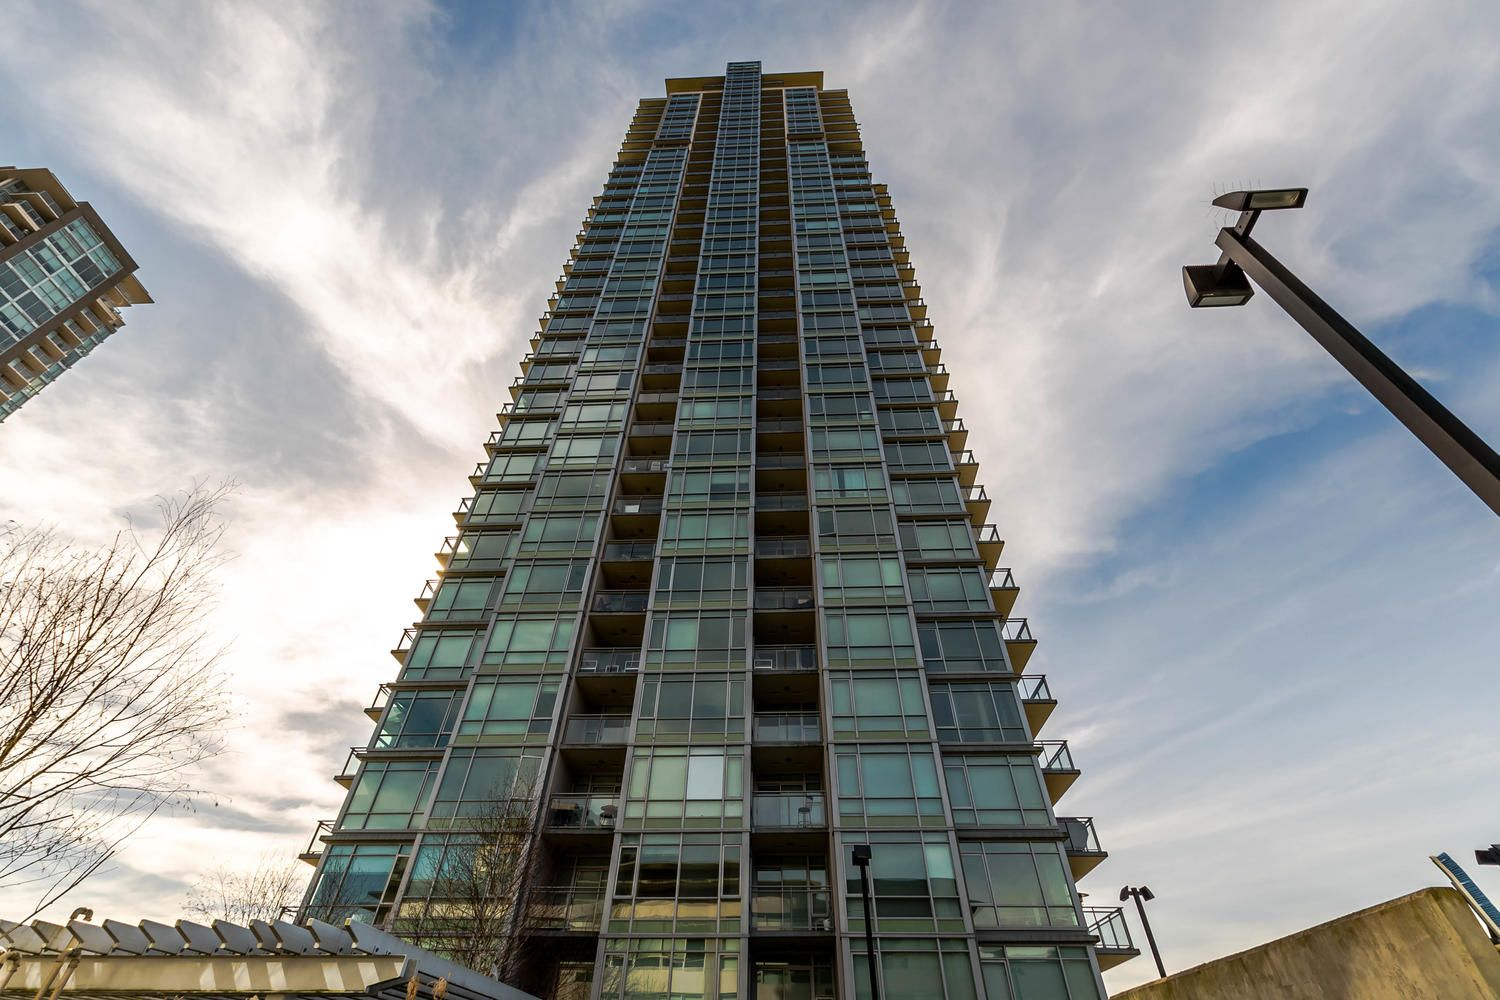 """Main Photo: 2009 2955 ATLANTIC Avenue in Coquitlam: North Coquitlam Condo for sale in """"OASIS BY ONNI"""" : MLS®# R2246938"""